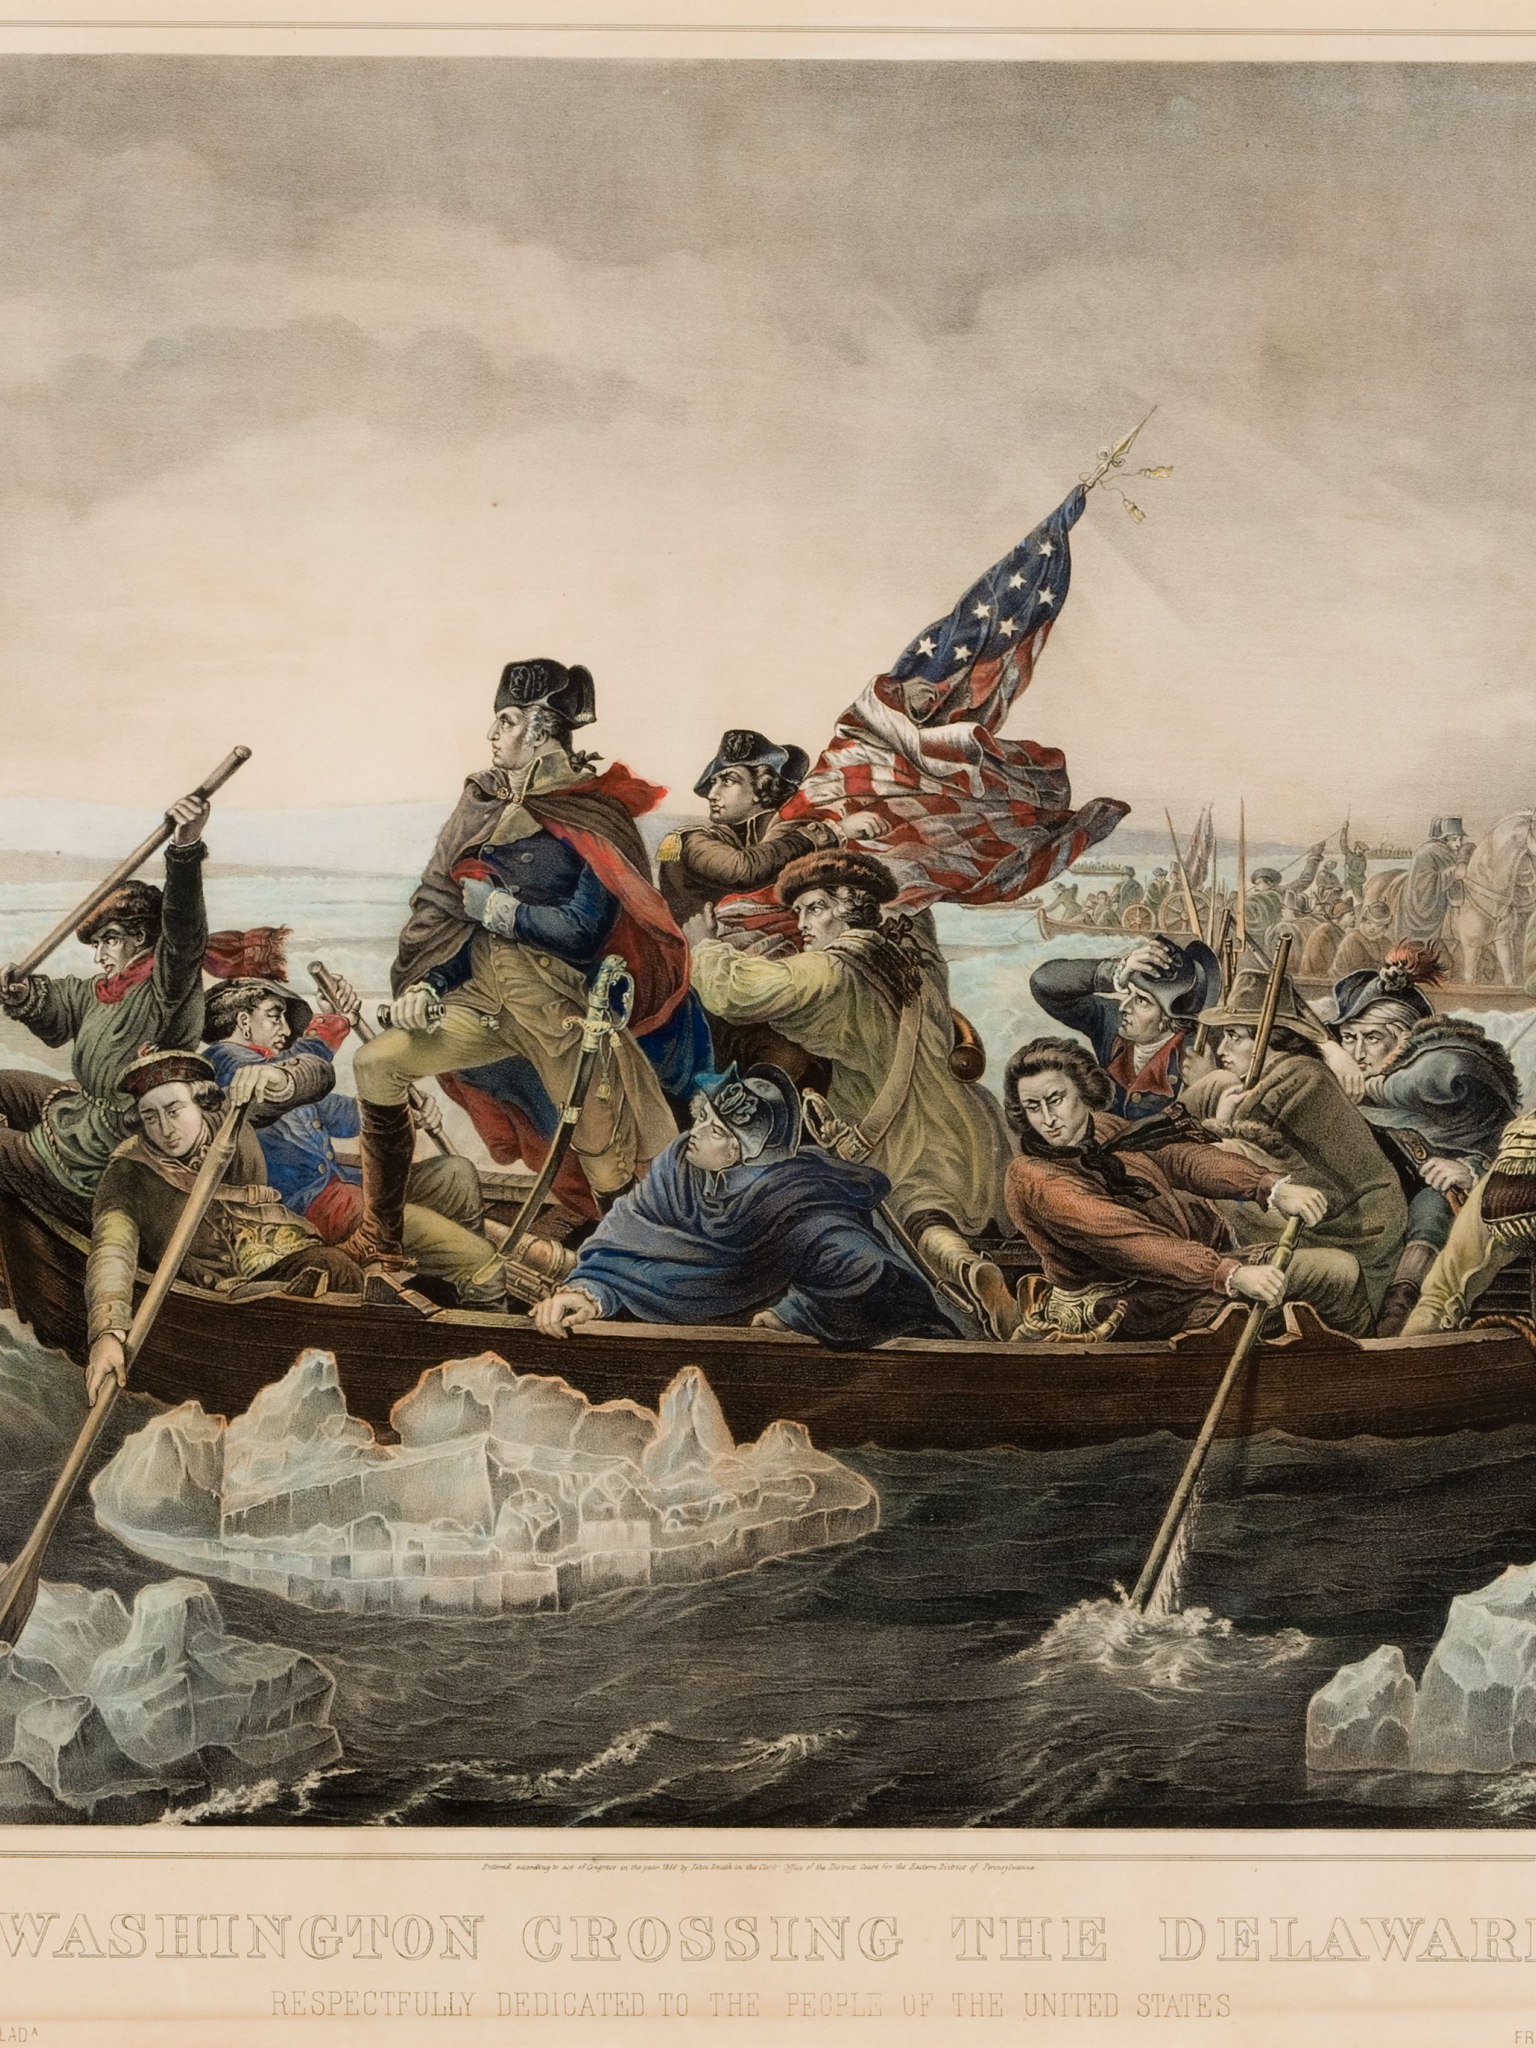 Free Download George Washington Crossing The Delaware Images